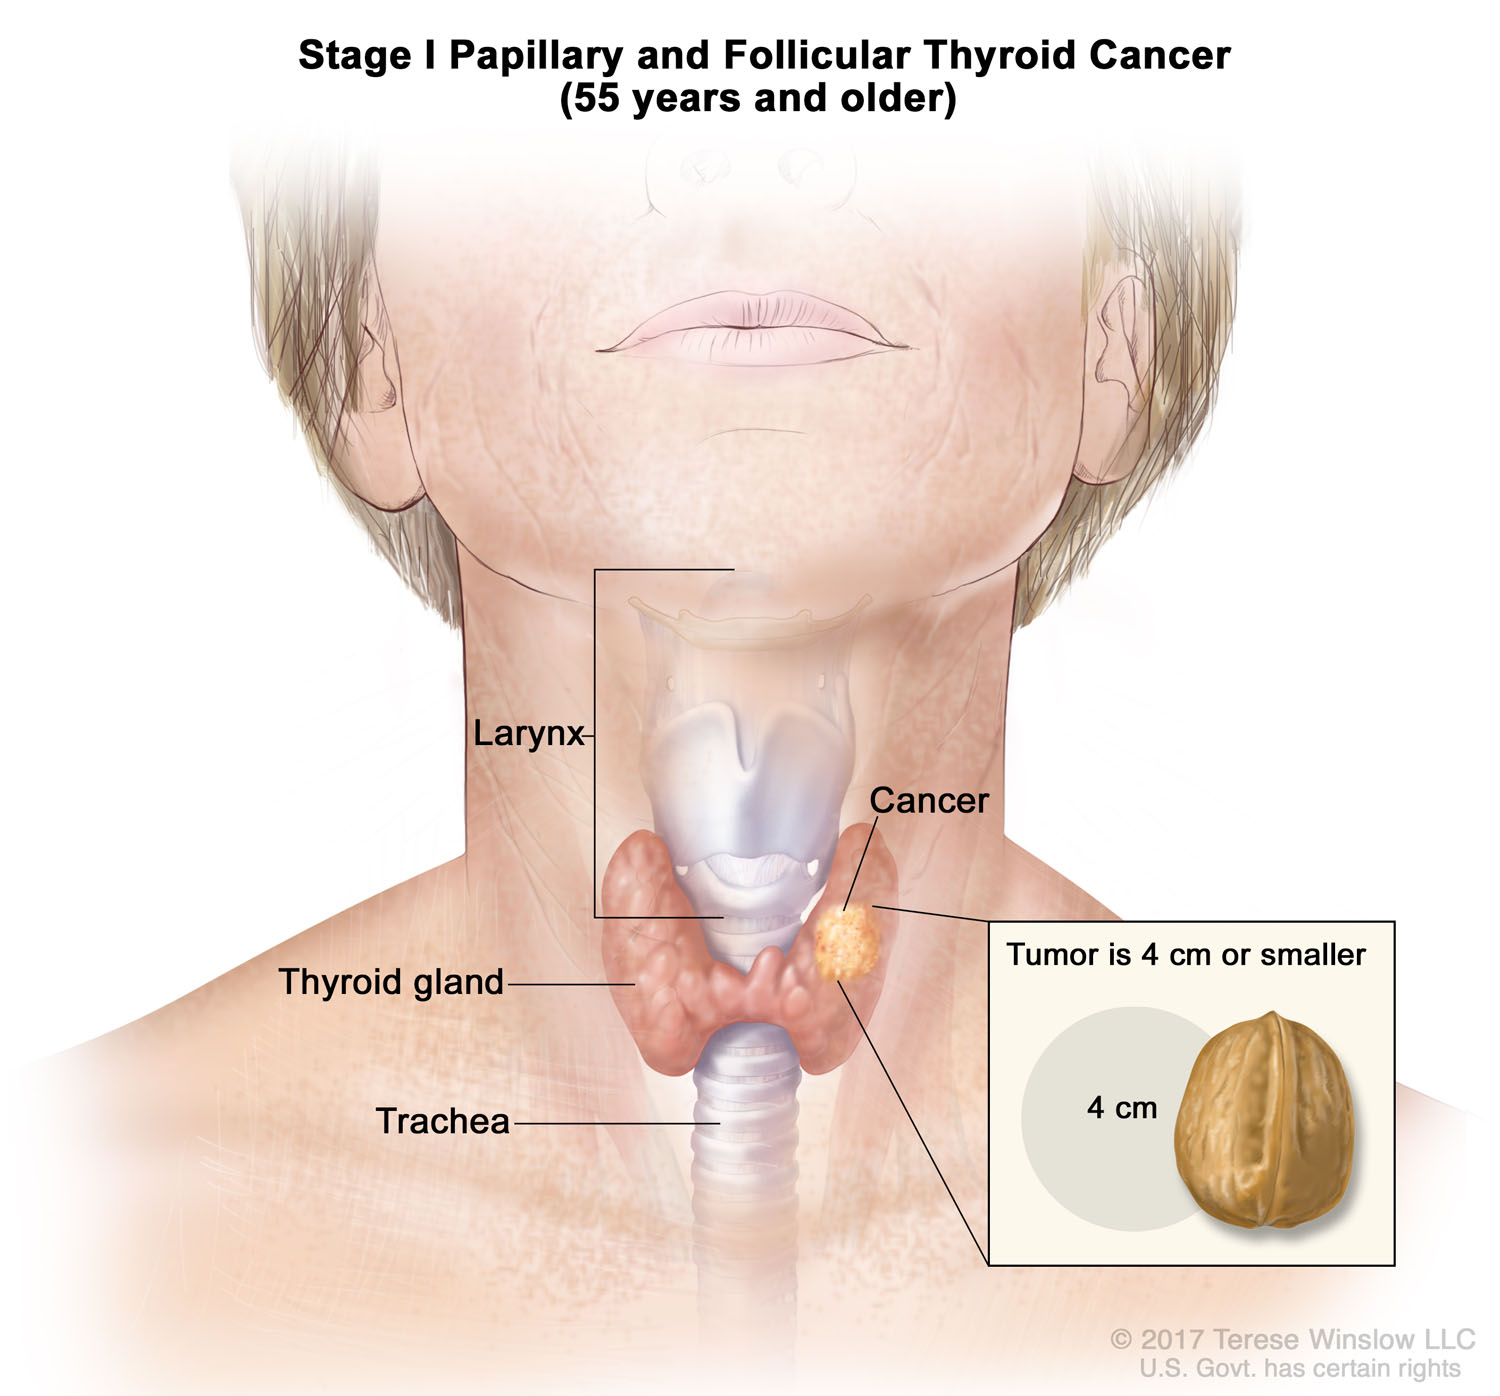 thyroid-cancer-papillary-follicular-stage1-over55.jpg